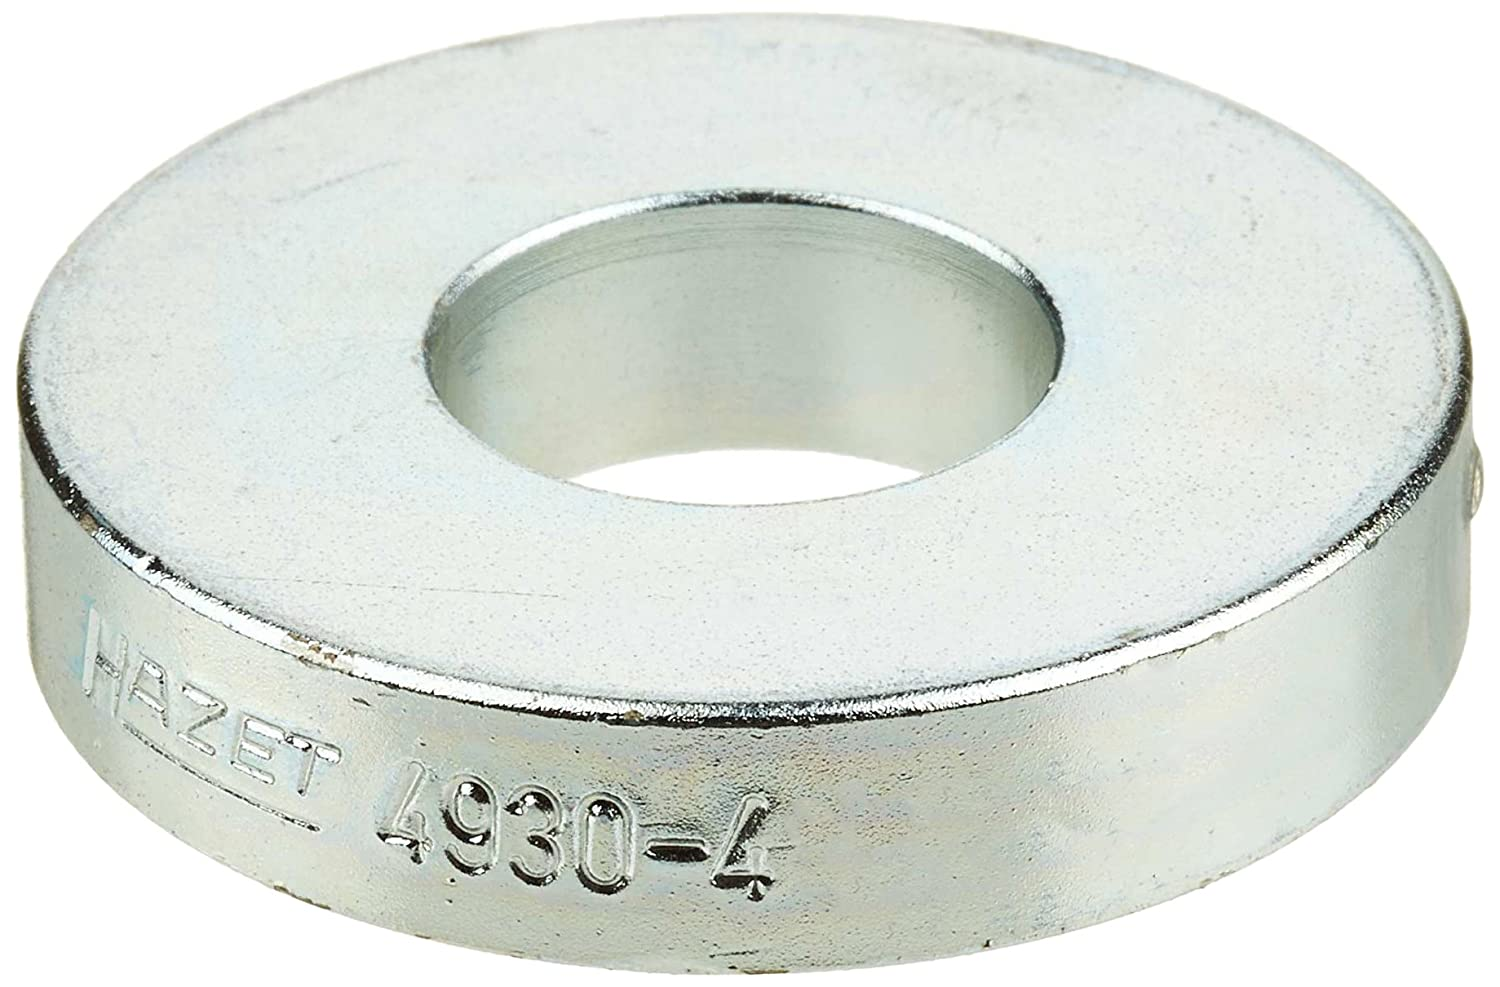 Williams 6-664 3//4 Drive Impact Socket 6 Point 2-Inch Snap-on Industrial Brand JH Williams